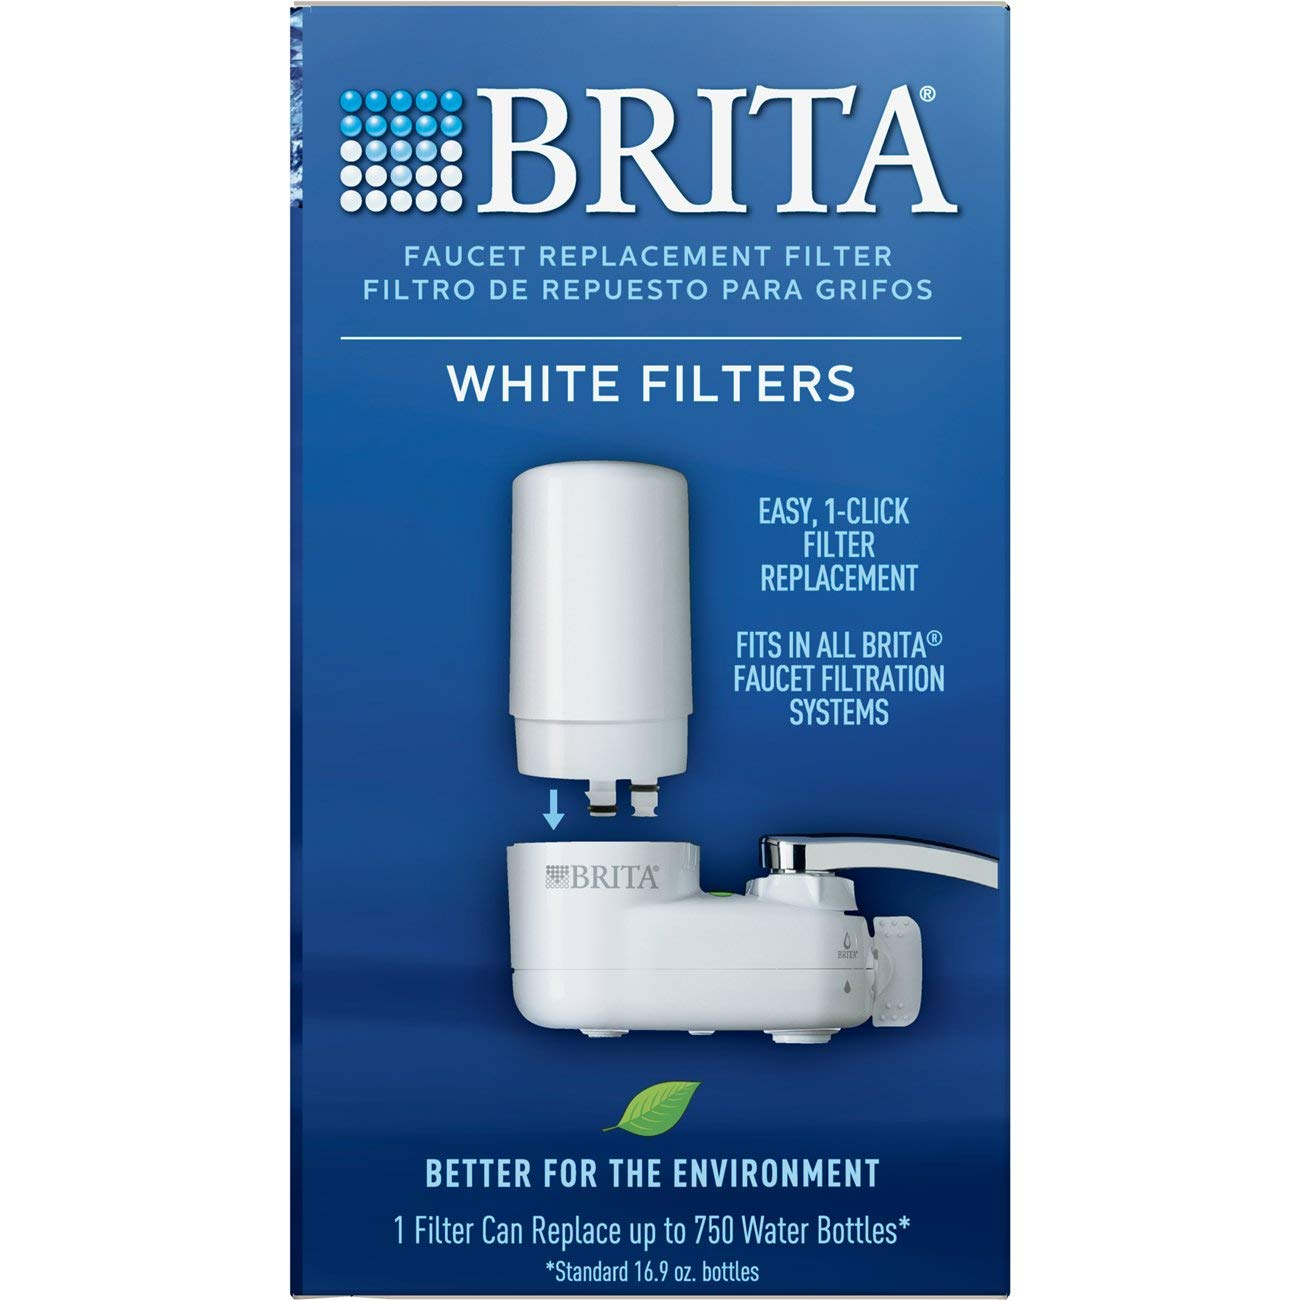 Brita 36313 Faucet Replacement Filters, 3ct, WHITE by Brita (Image #7)